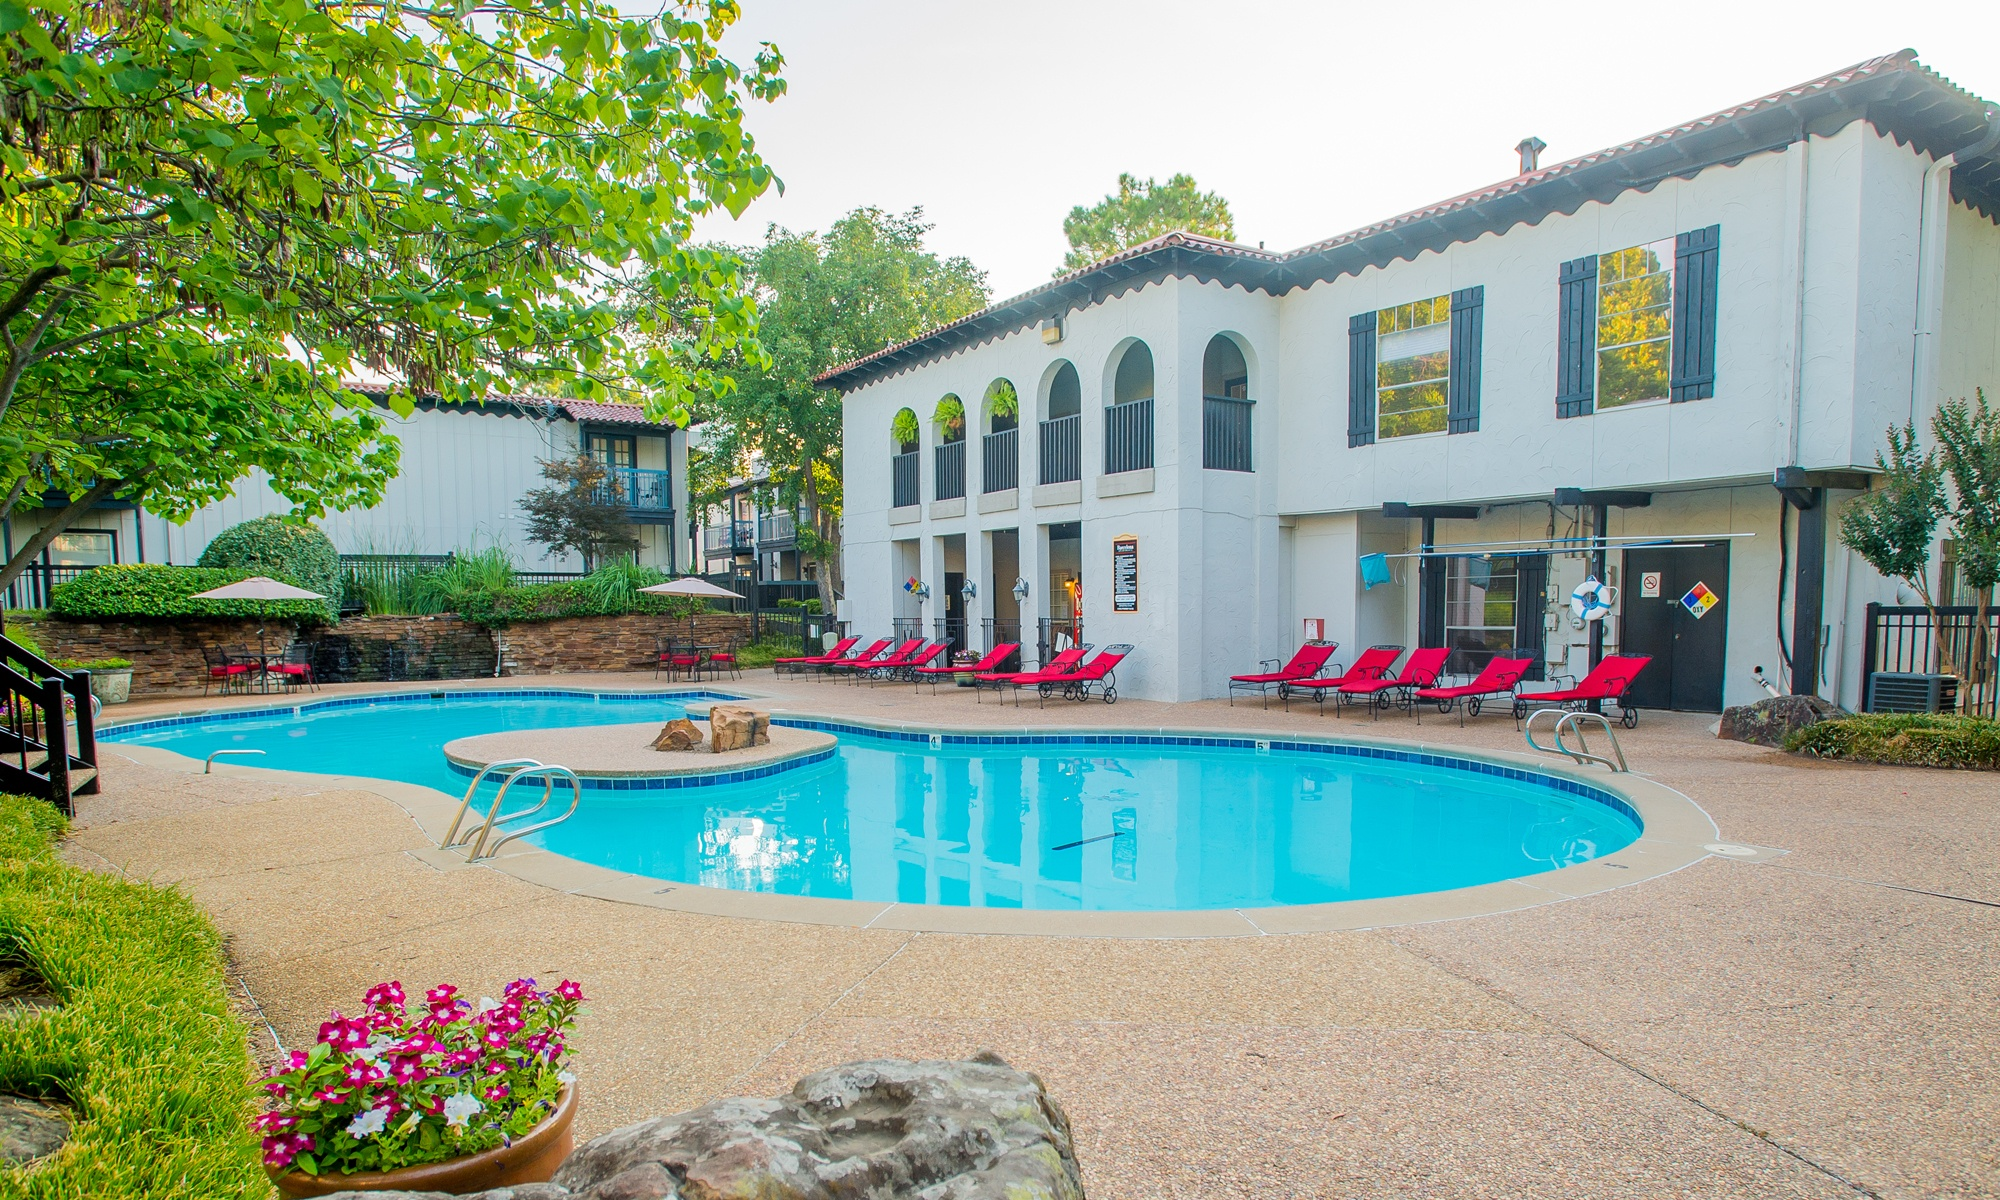 Luxury apartments in Tulsa with a large swimming pool